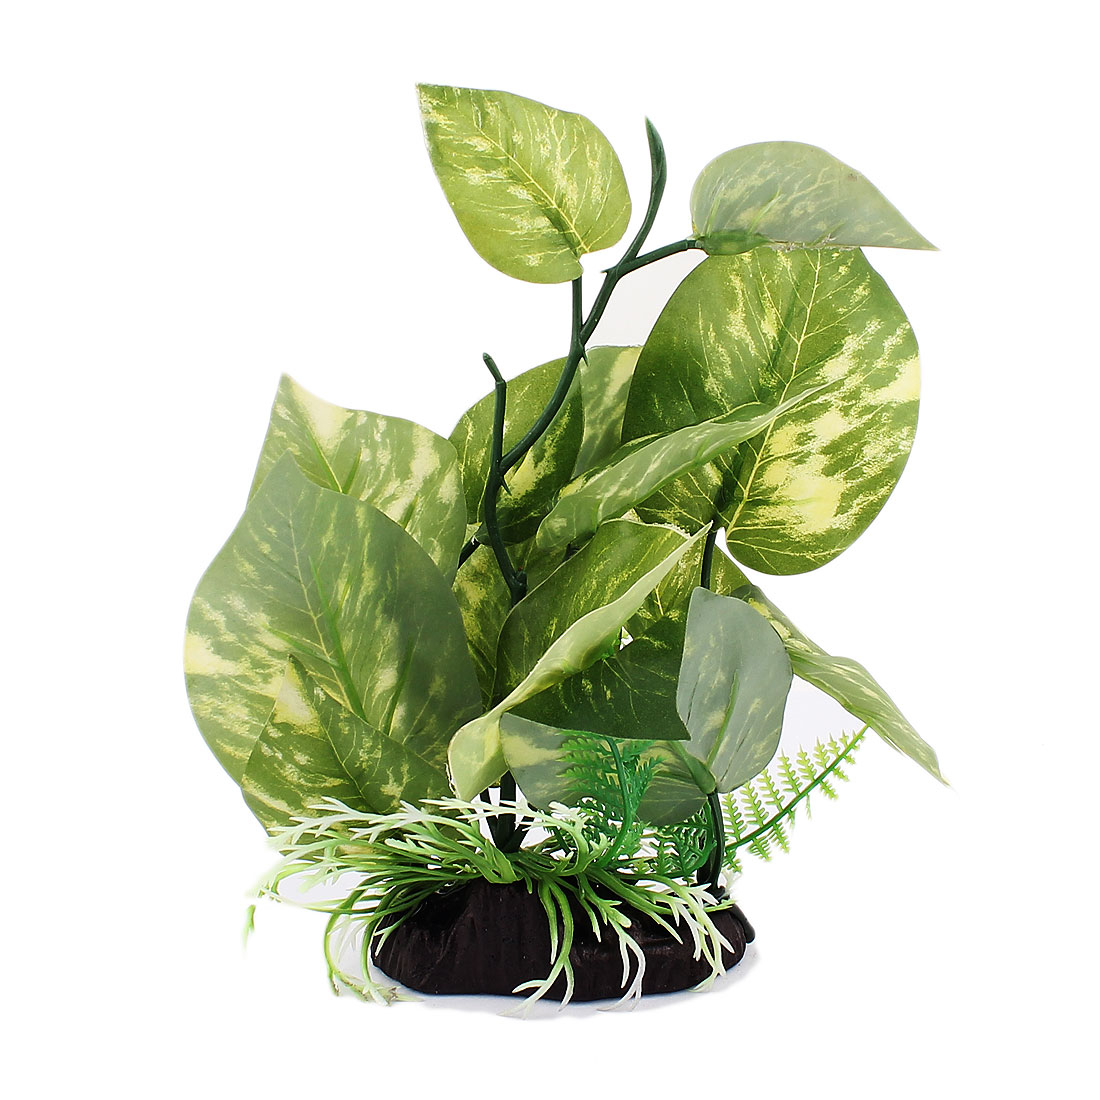 Plastic Simulation Leaf Aquatic Plant Fish Tank Aquarium Decoration